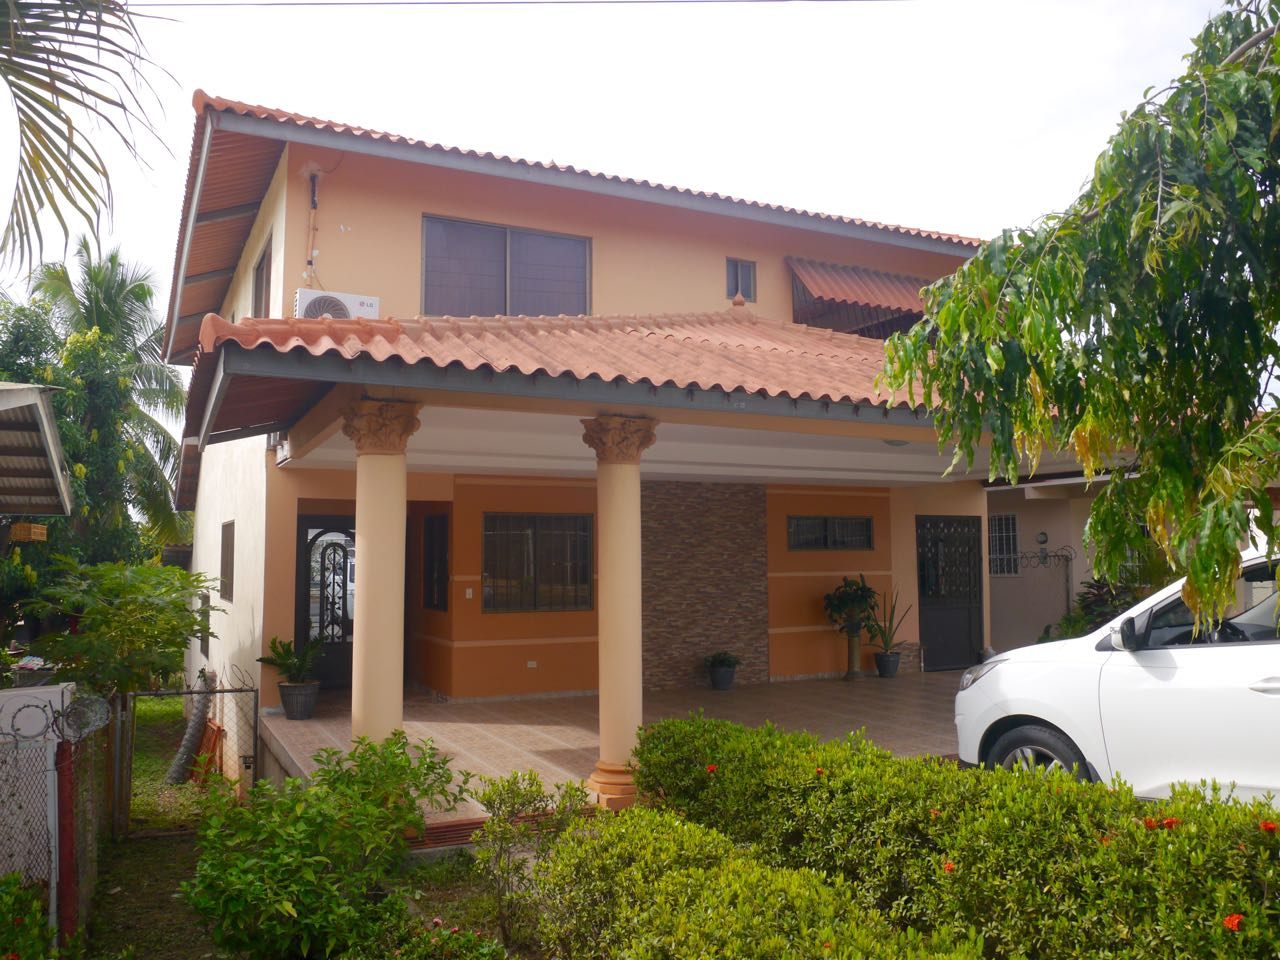 TWO-STORY HOUSE IN CHITRE